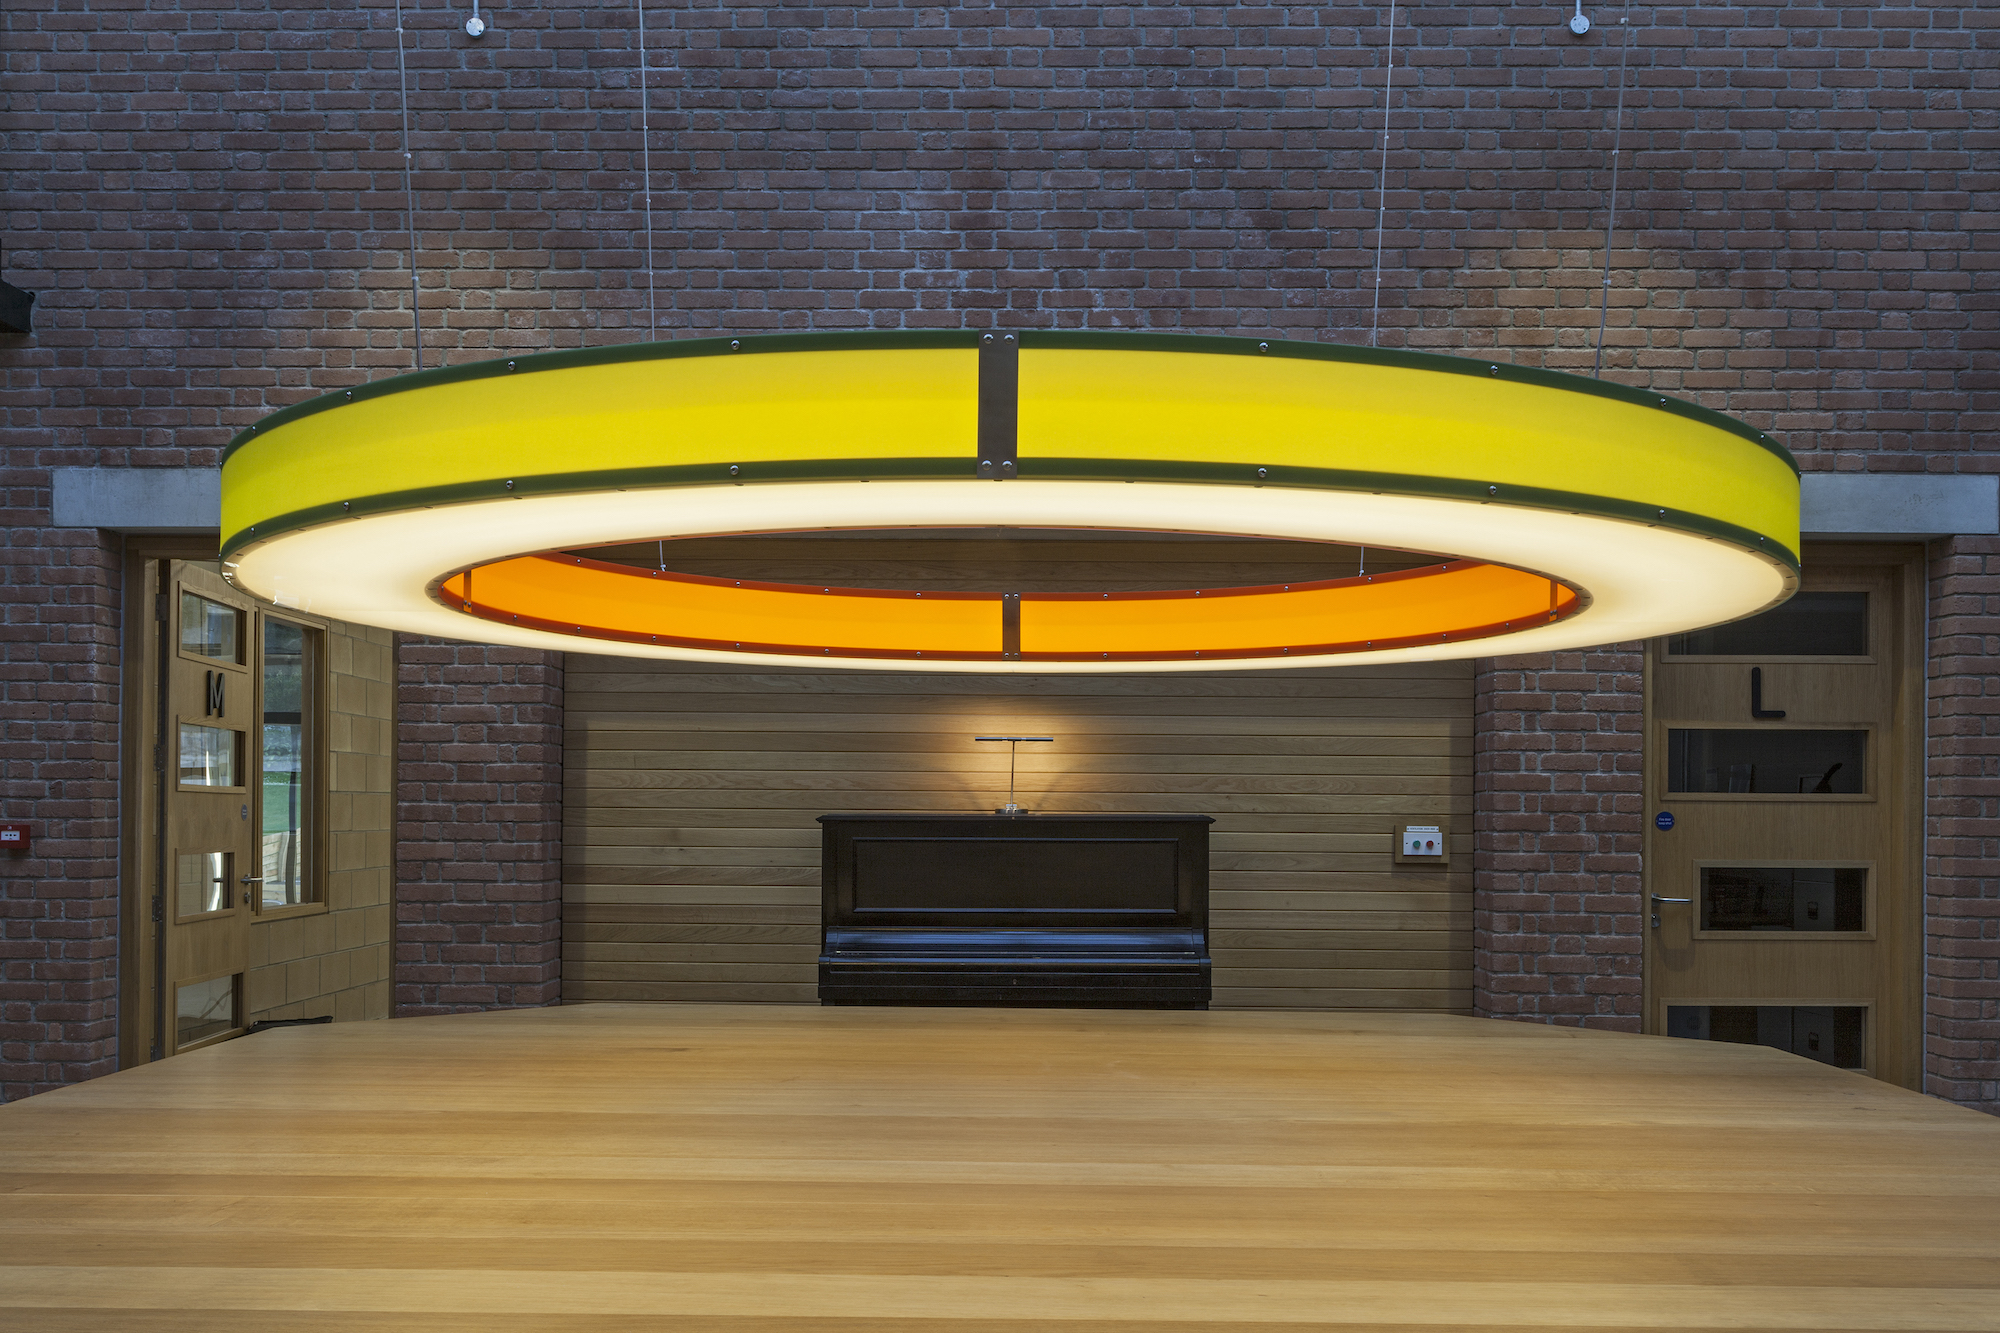 Eleanor Bell lighting expertise, design & installation